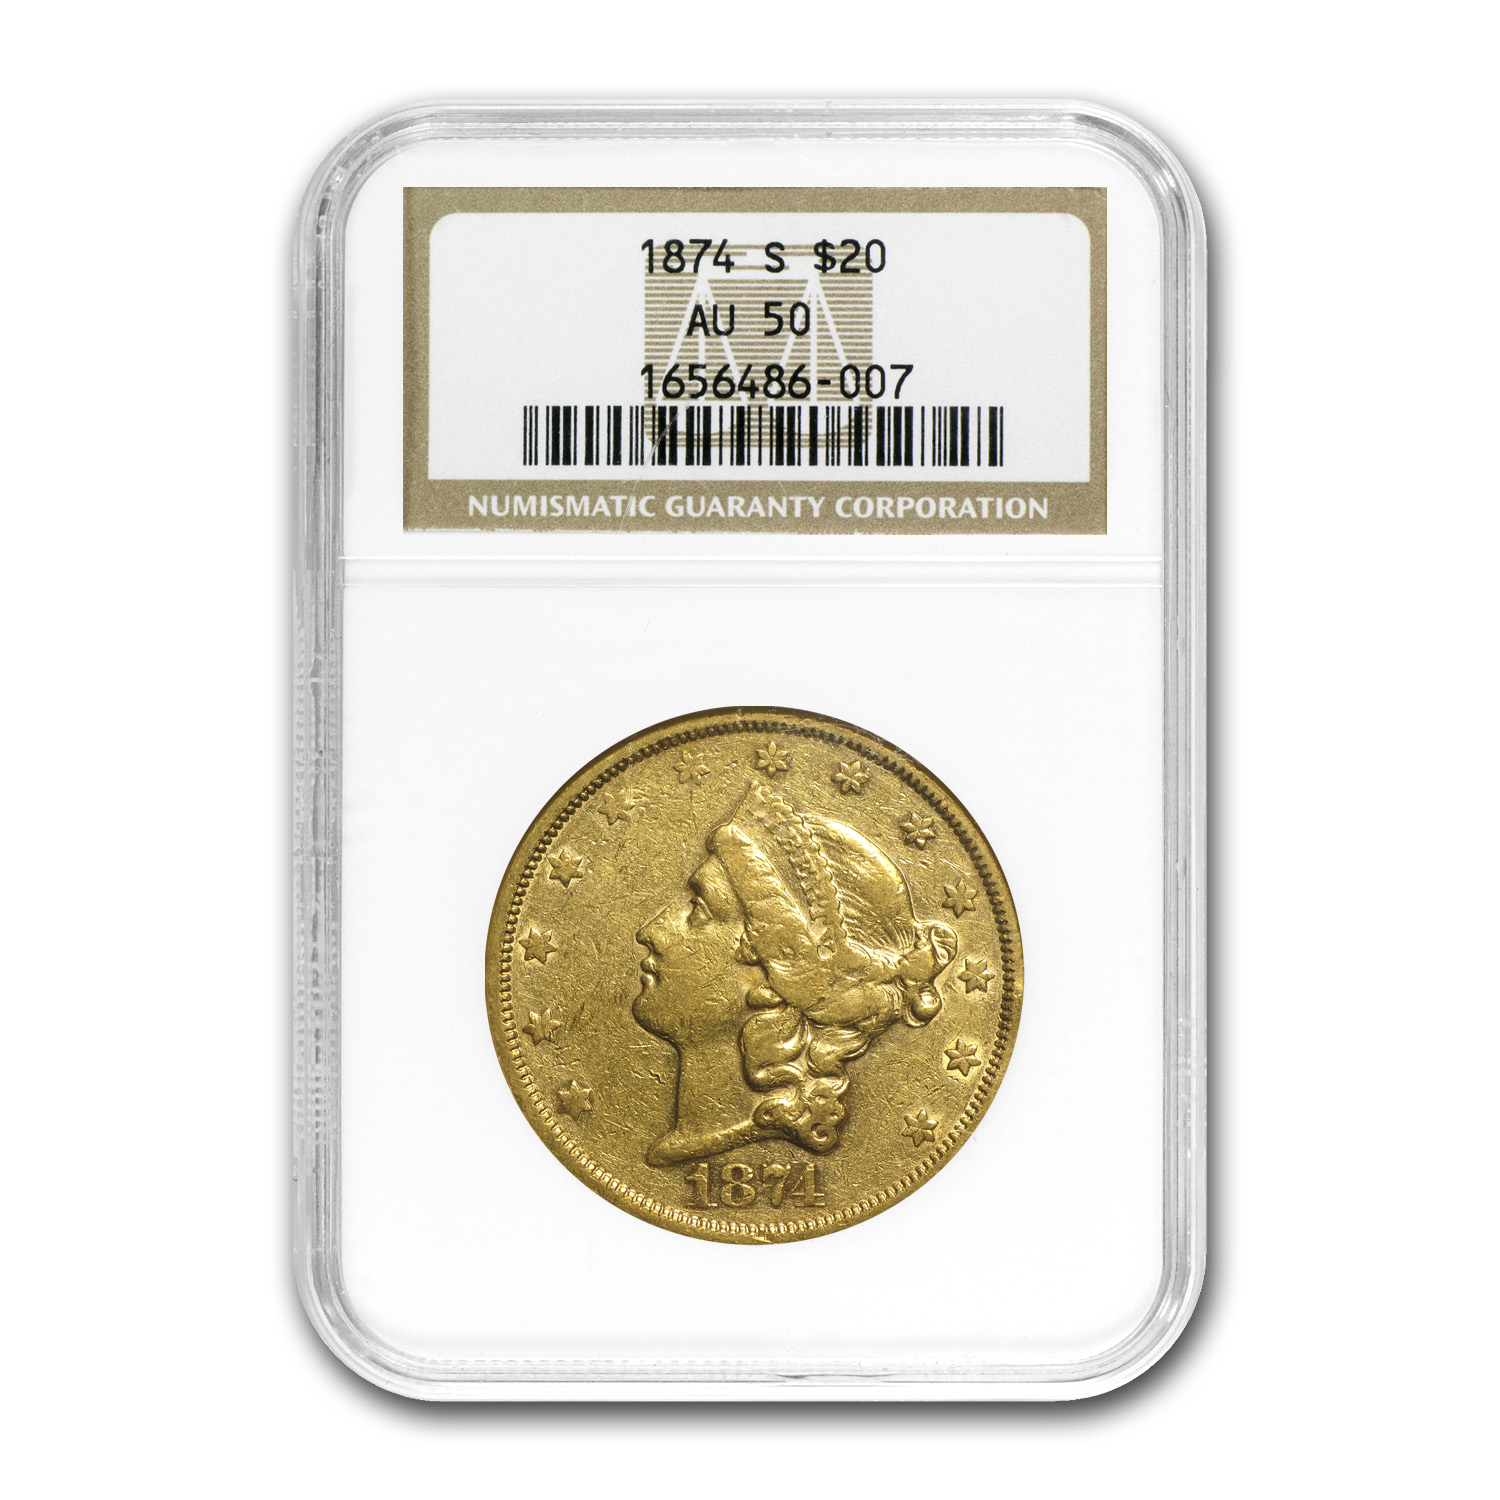 1874-S $20 Liberty Gold Double Eagle AU-50 NGC